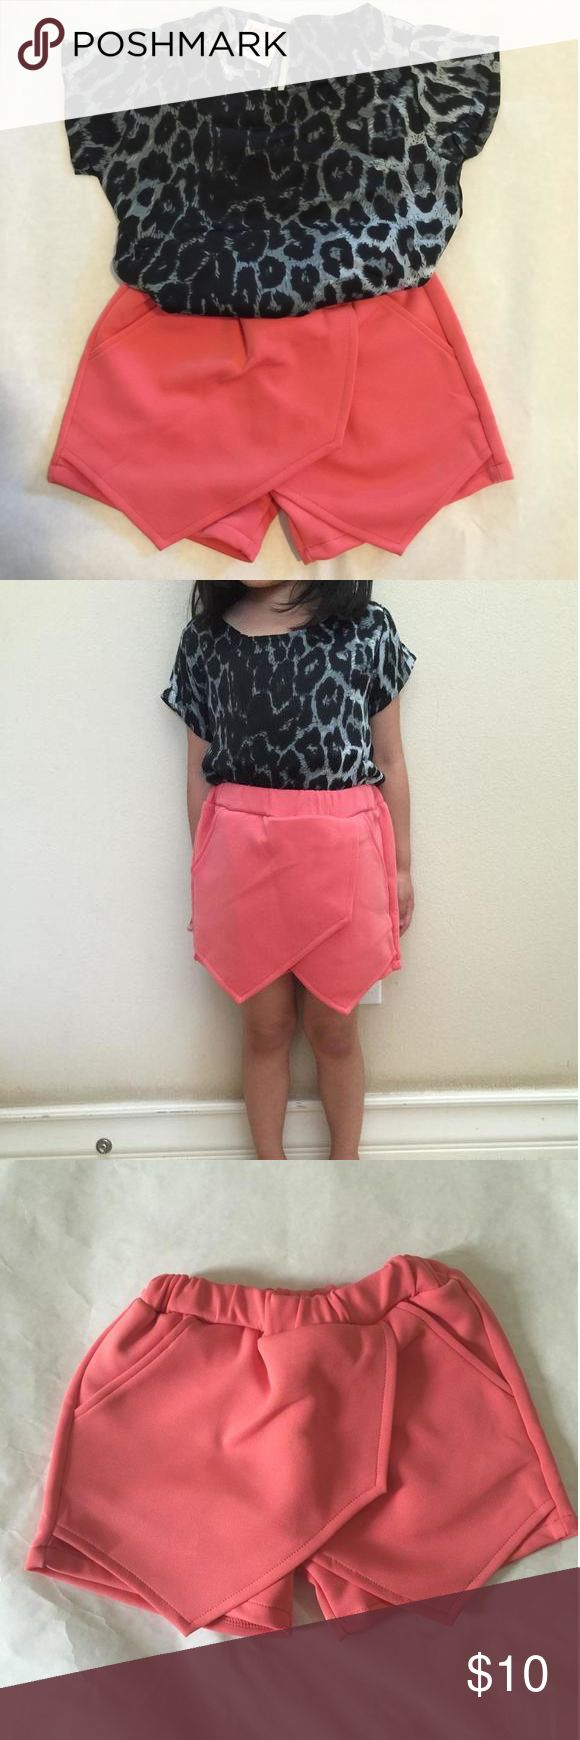 *brand new* Leopard shirt and pink skorts shorts set The latest style princess must have. Two pieces;leopard shirt and pink skorts shorts Matching Sets